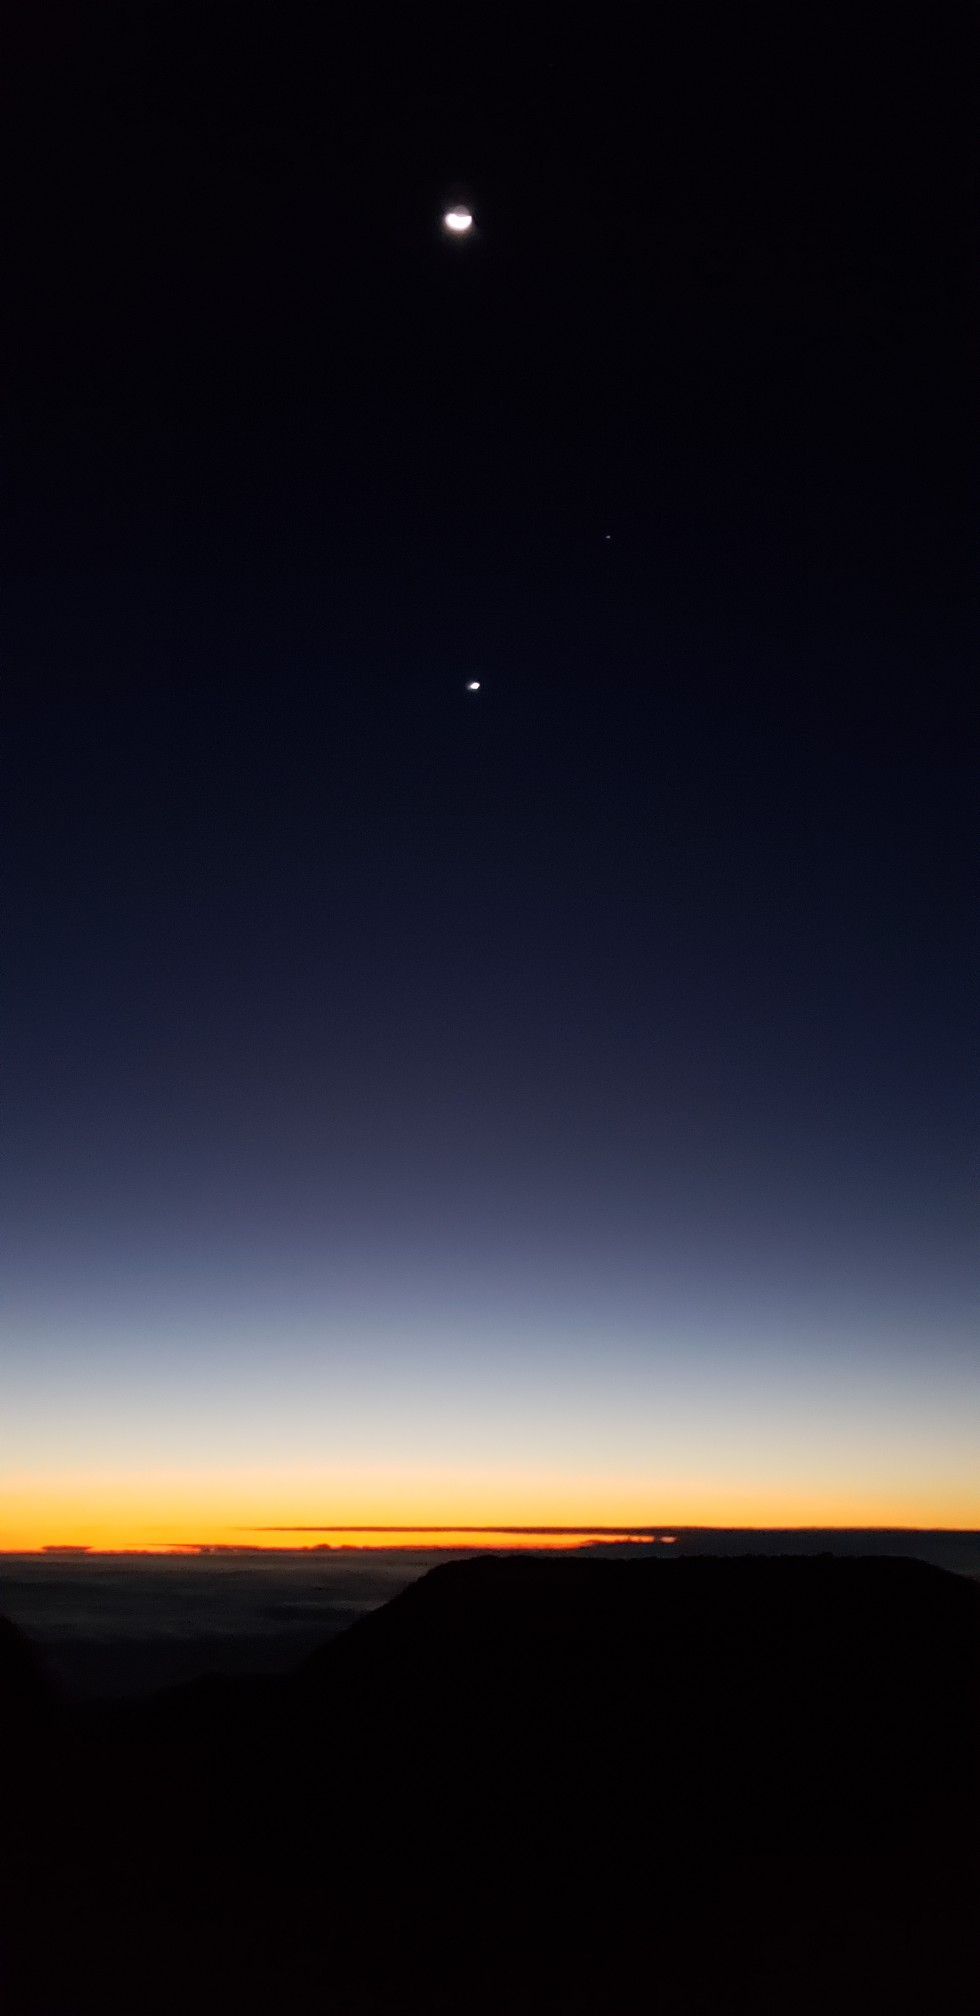 Pre-dawn glow, with the Moon and Jupiter above Haleakala Crater, December 2, 2018 (Image Copyright 2018 Holly Jahangiri)